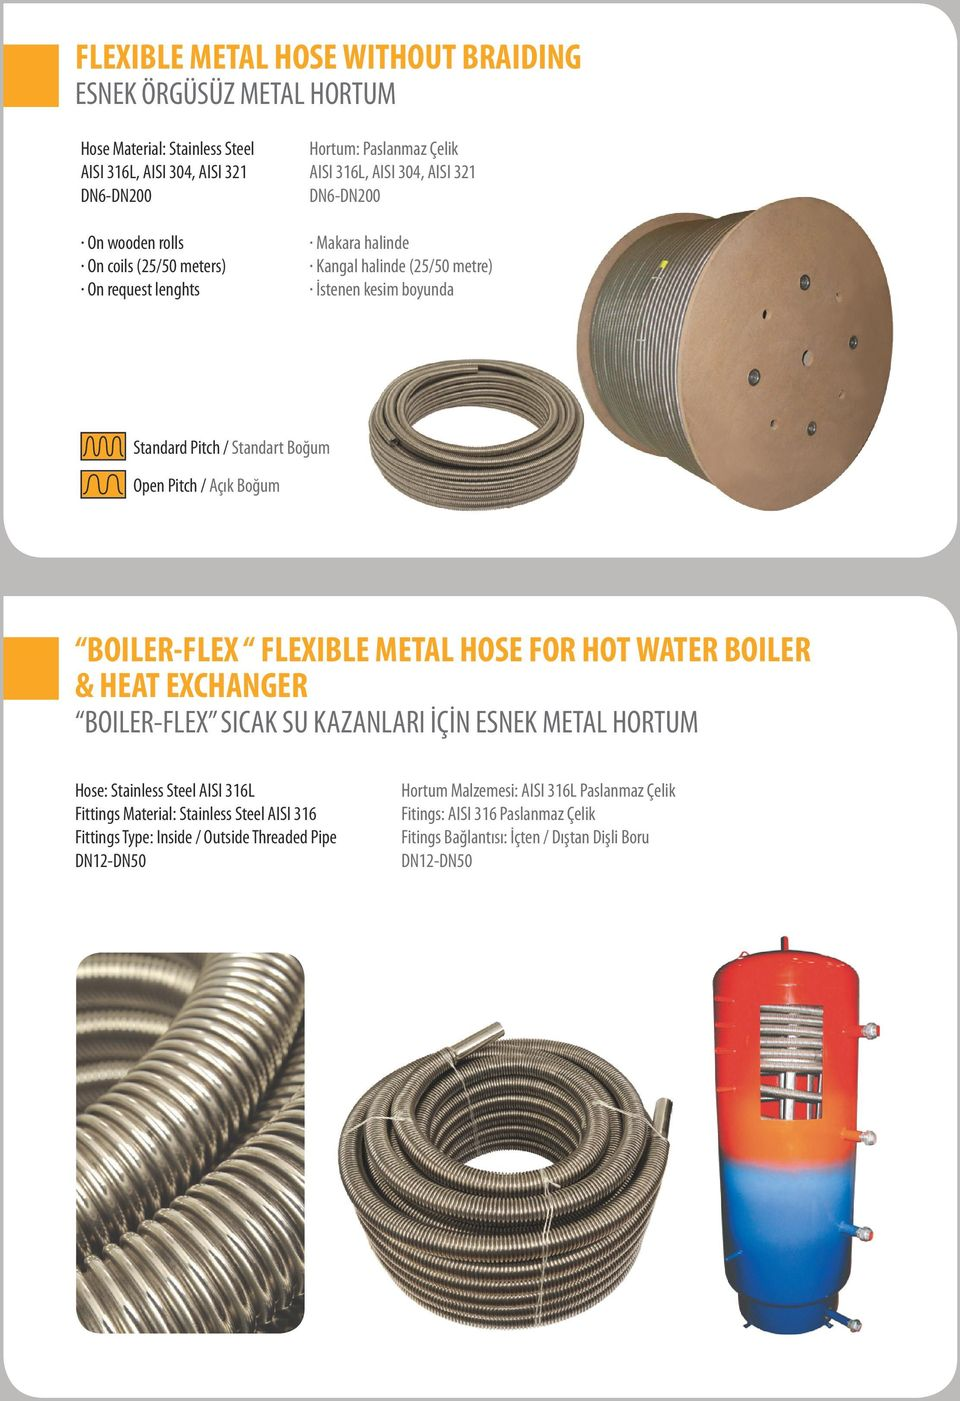 Boğum BOILER-FLEX FLEXIBLE METAL HOSE FOR HOT WATER BOILER & HEAT EXCHANGER BOILER-FLEX SICAK SU KAZANLARI İÇİN ESNEK METAL HORTUM Hose: Stainless Steel AISI 316L Fittings Material: Stainless